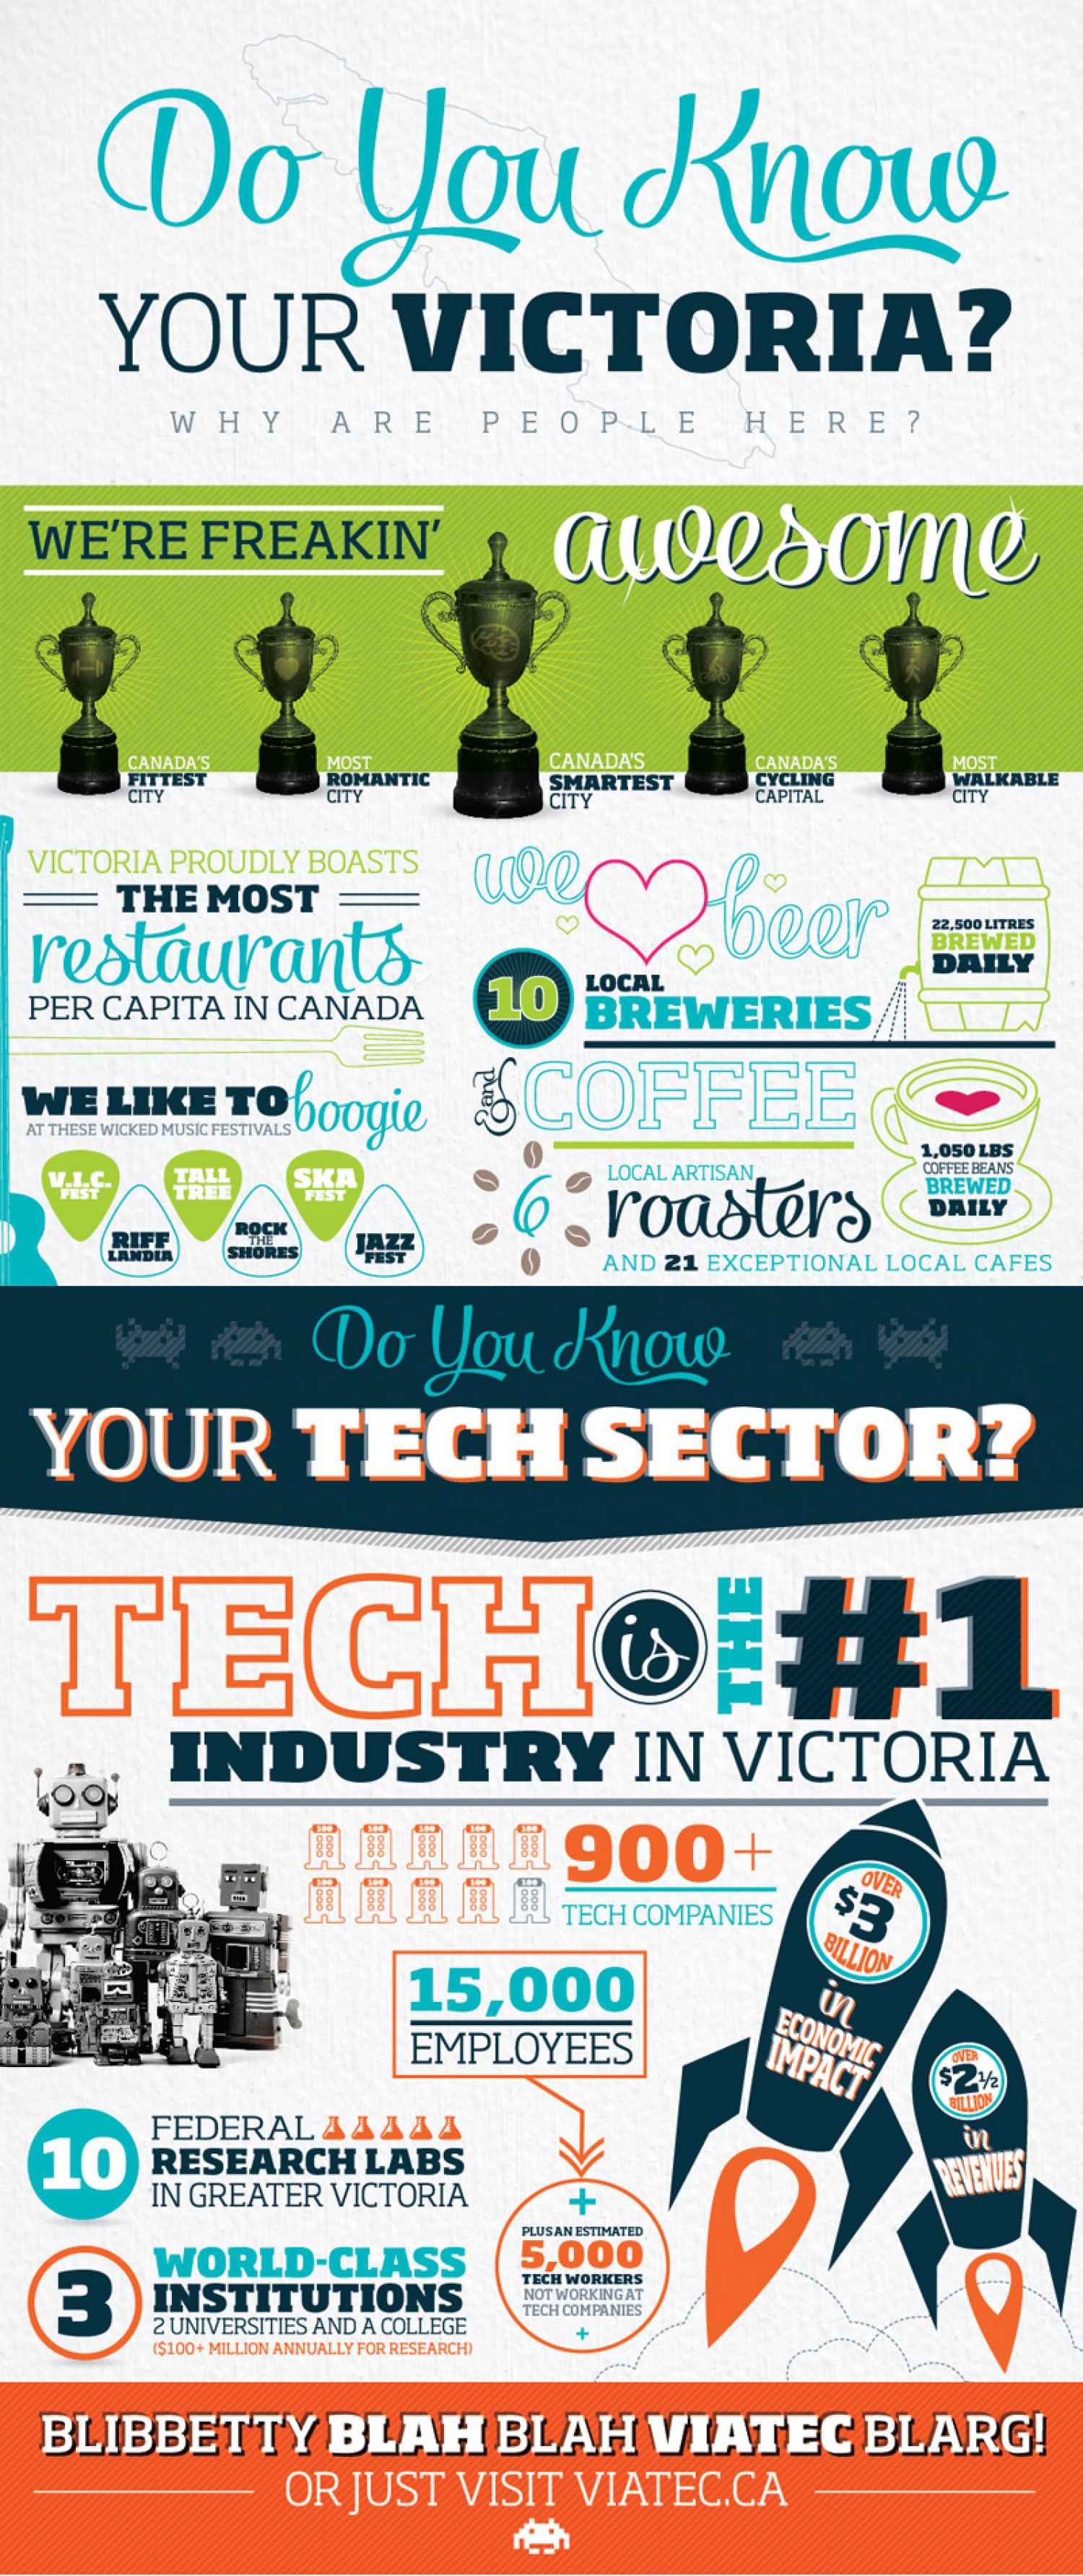 Do You Know Your Victoria? Infographic